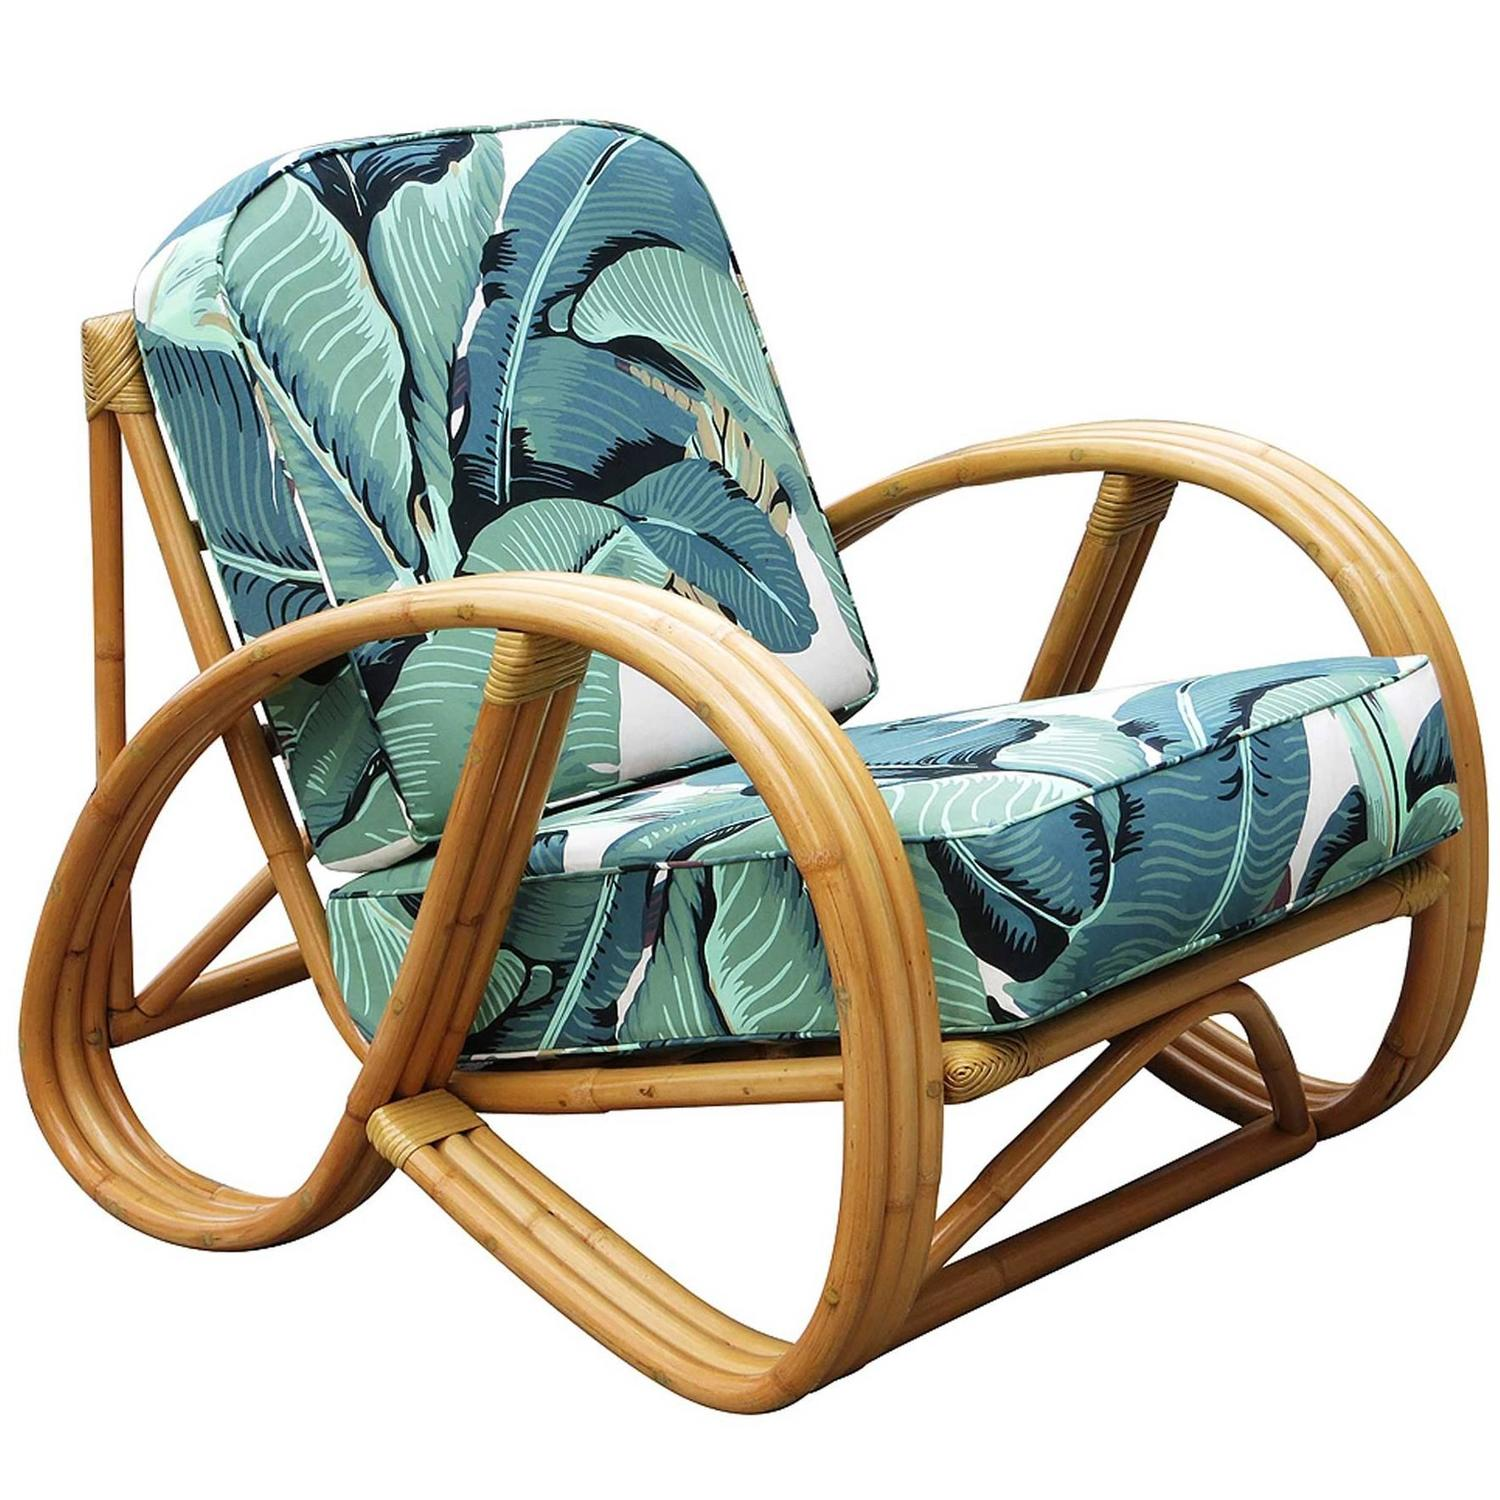 circular bamboo chair cushion dance gif 3 4 round pretzel rattan lounge with beverly palms